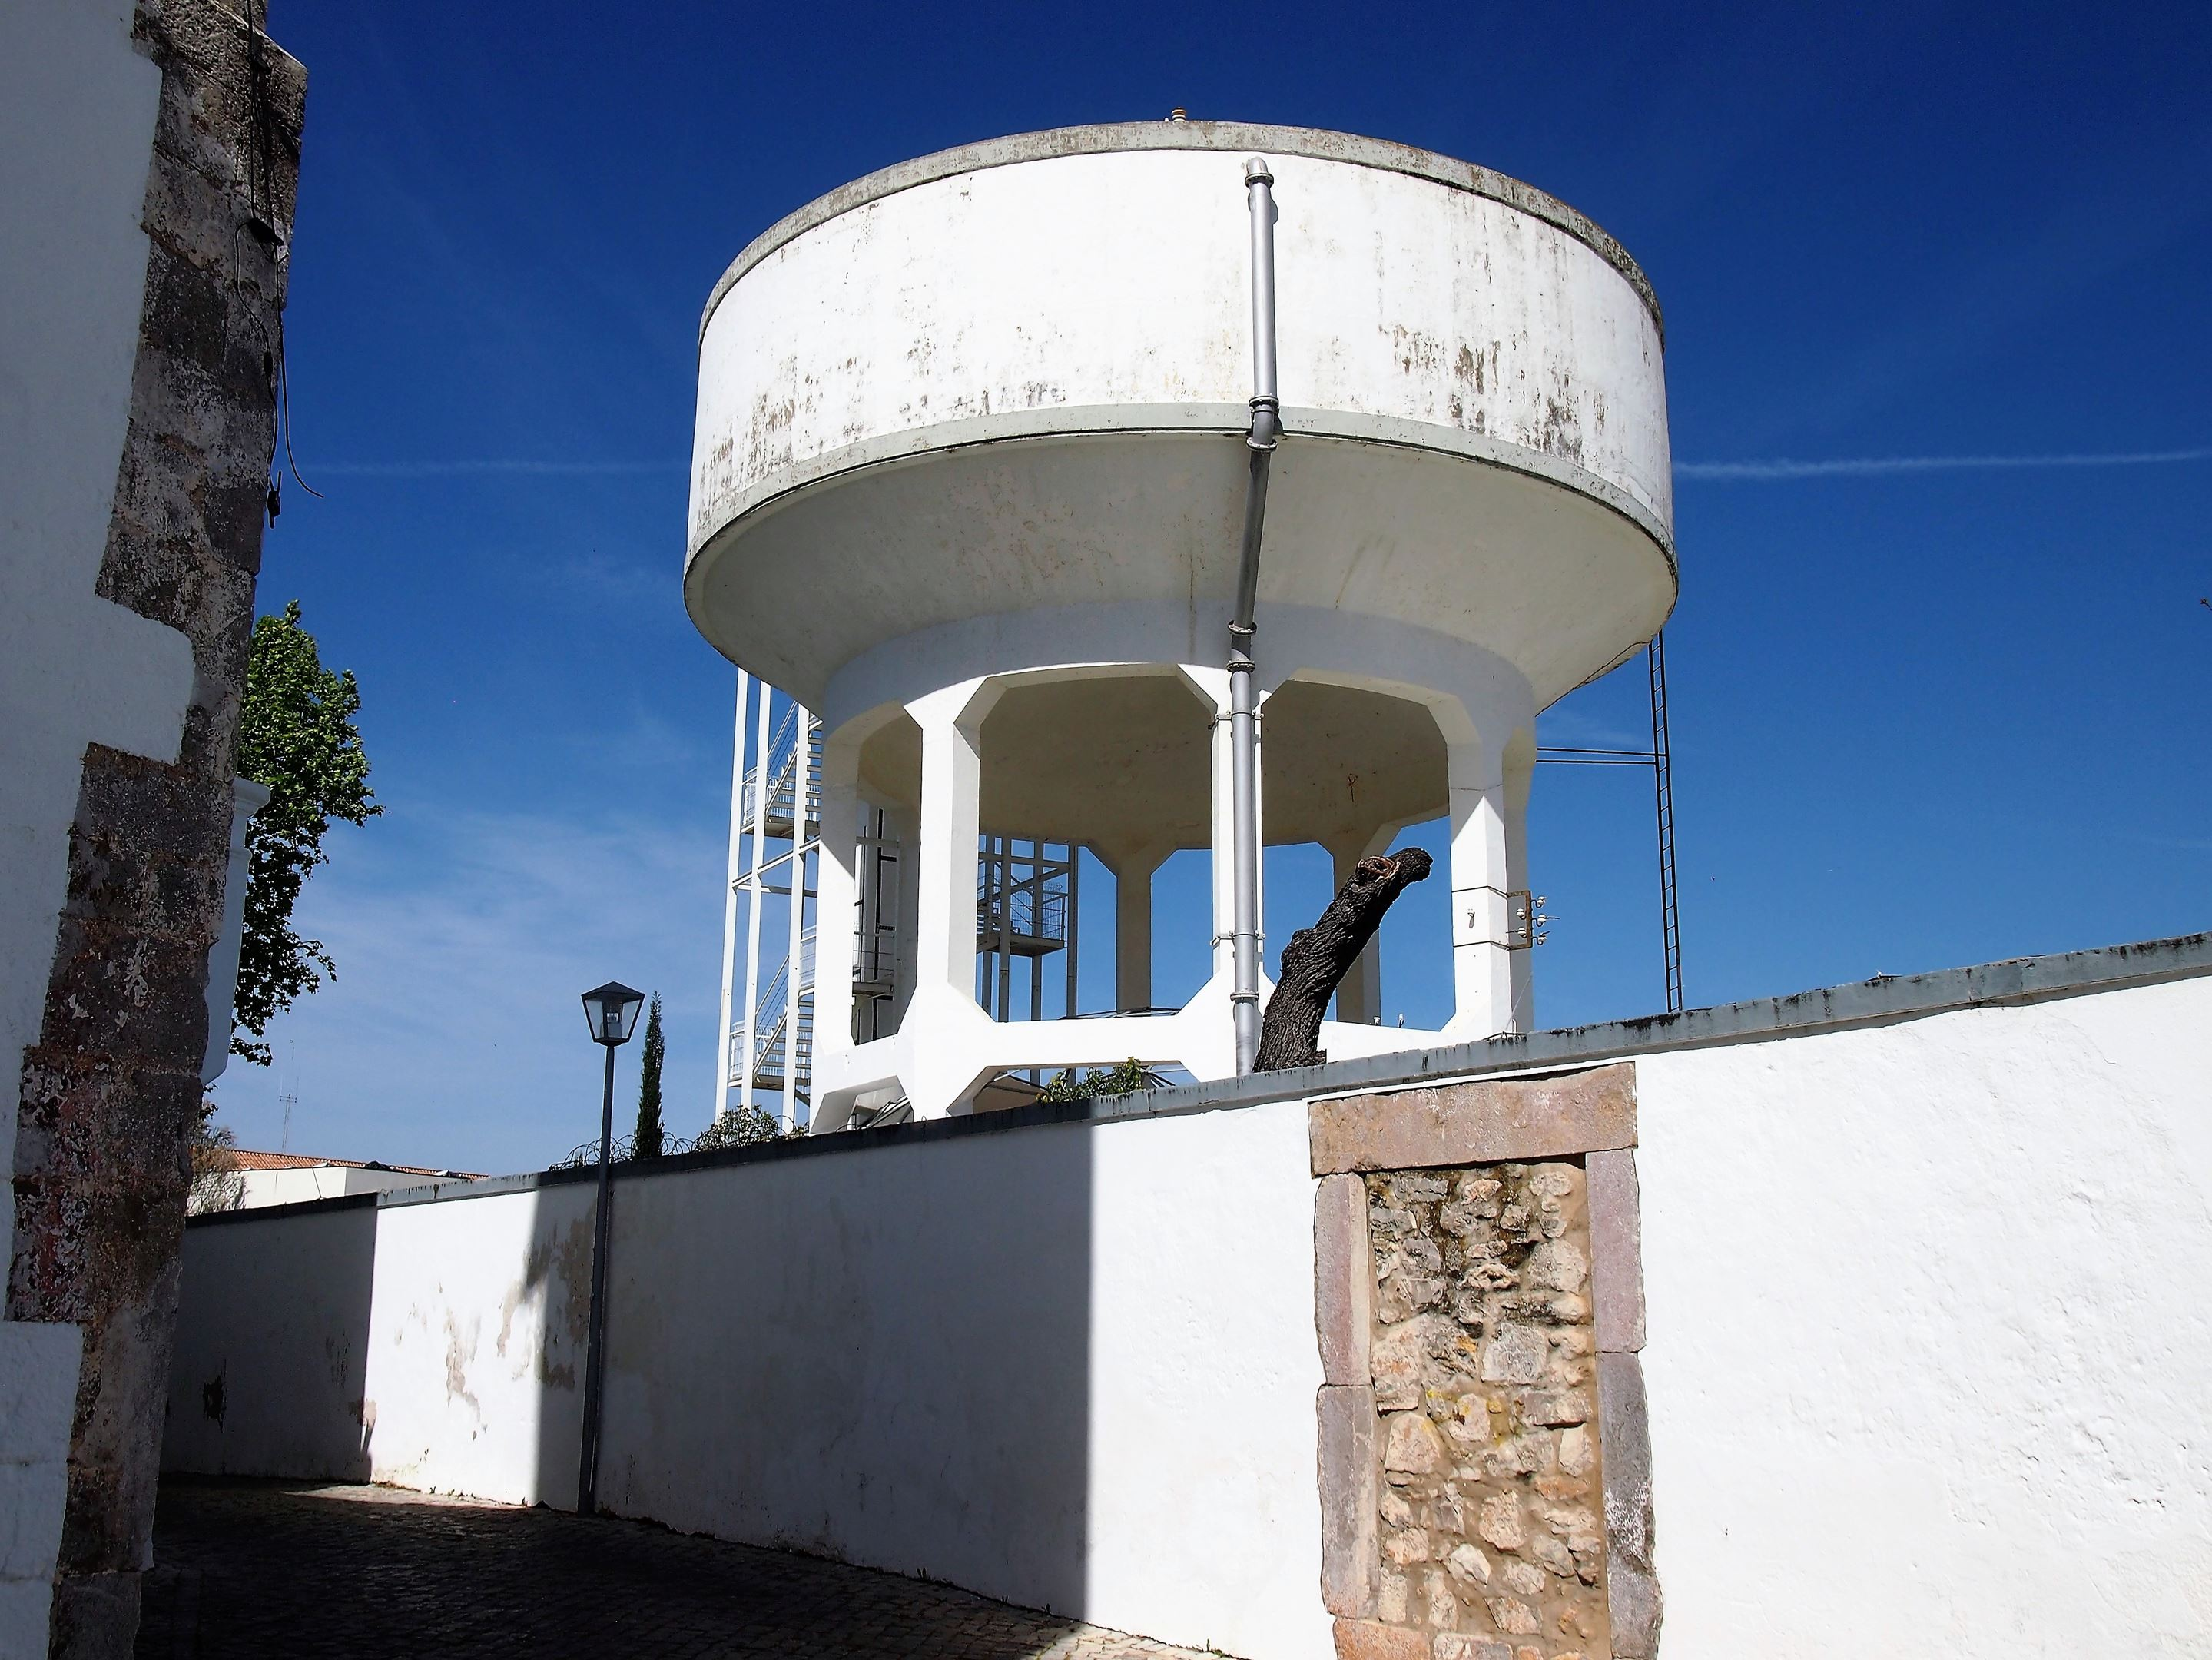 Tower of Tavira (Torre de Tavira), which has a camera obscura or pinhole camera at the top providing fantastic views of the city.